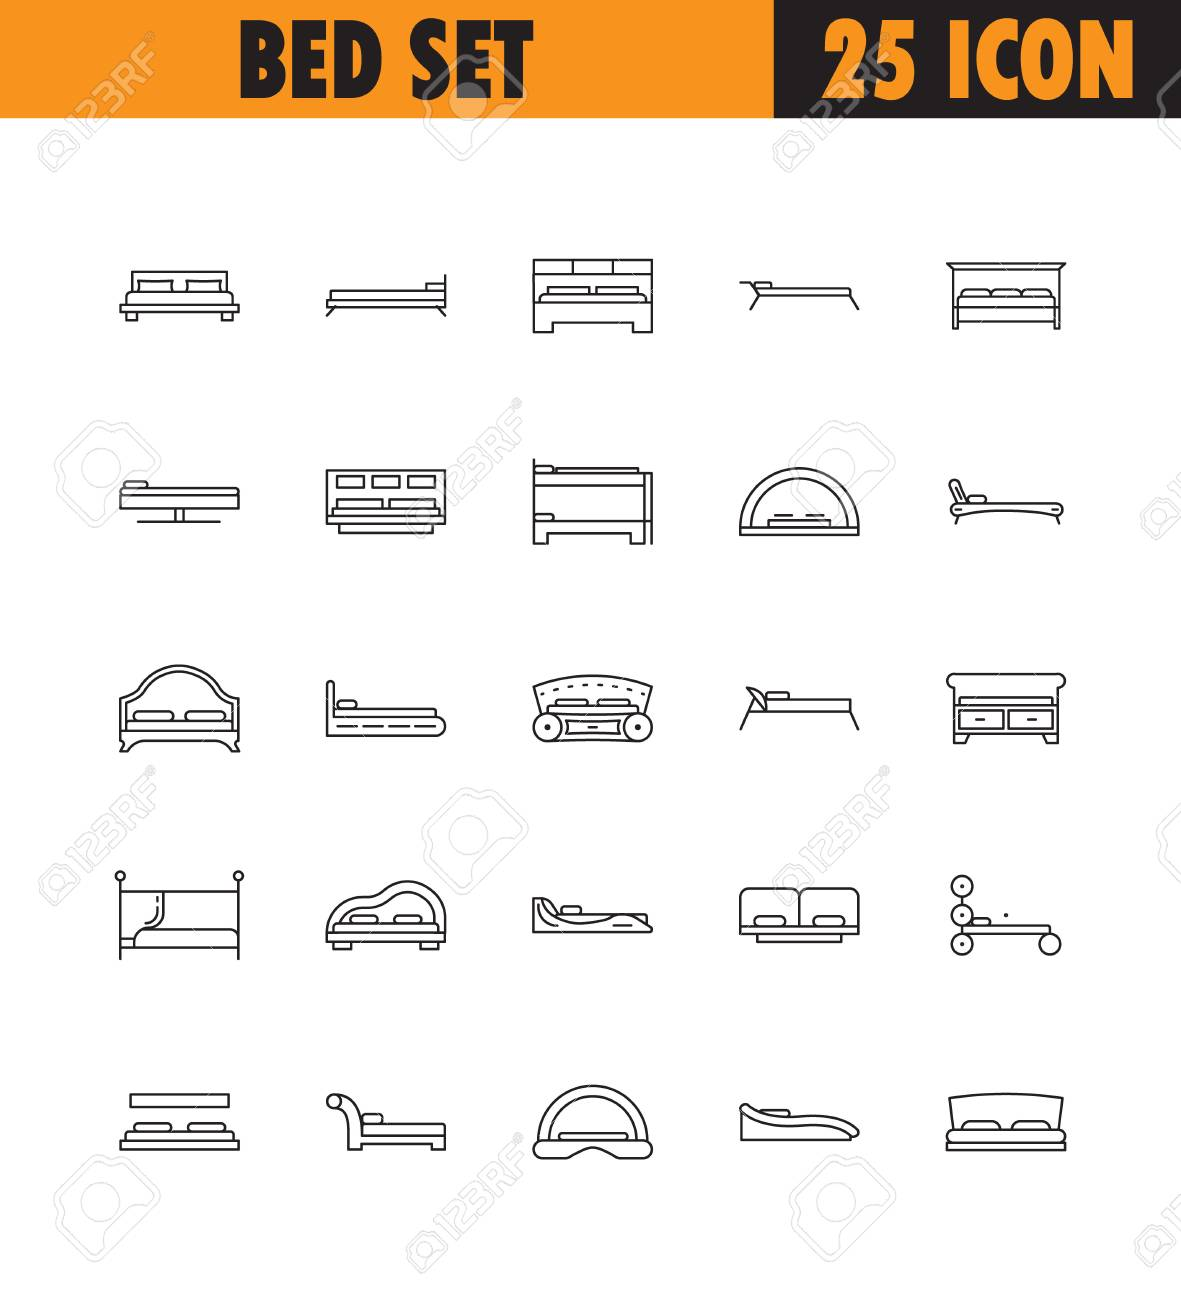 Beds line icon set collection of high quality pictograms of collection of high quality pictograms of homes furniture outline vector buycottarizona Image collections